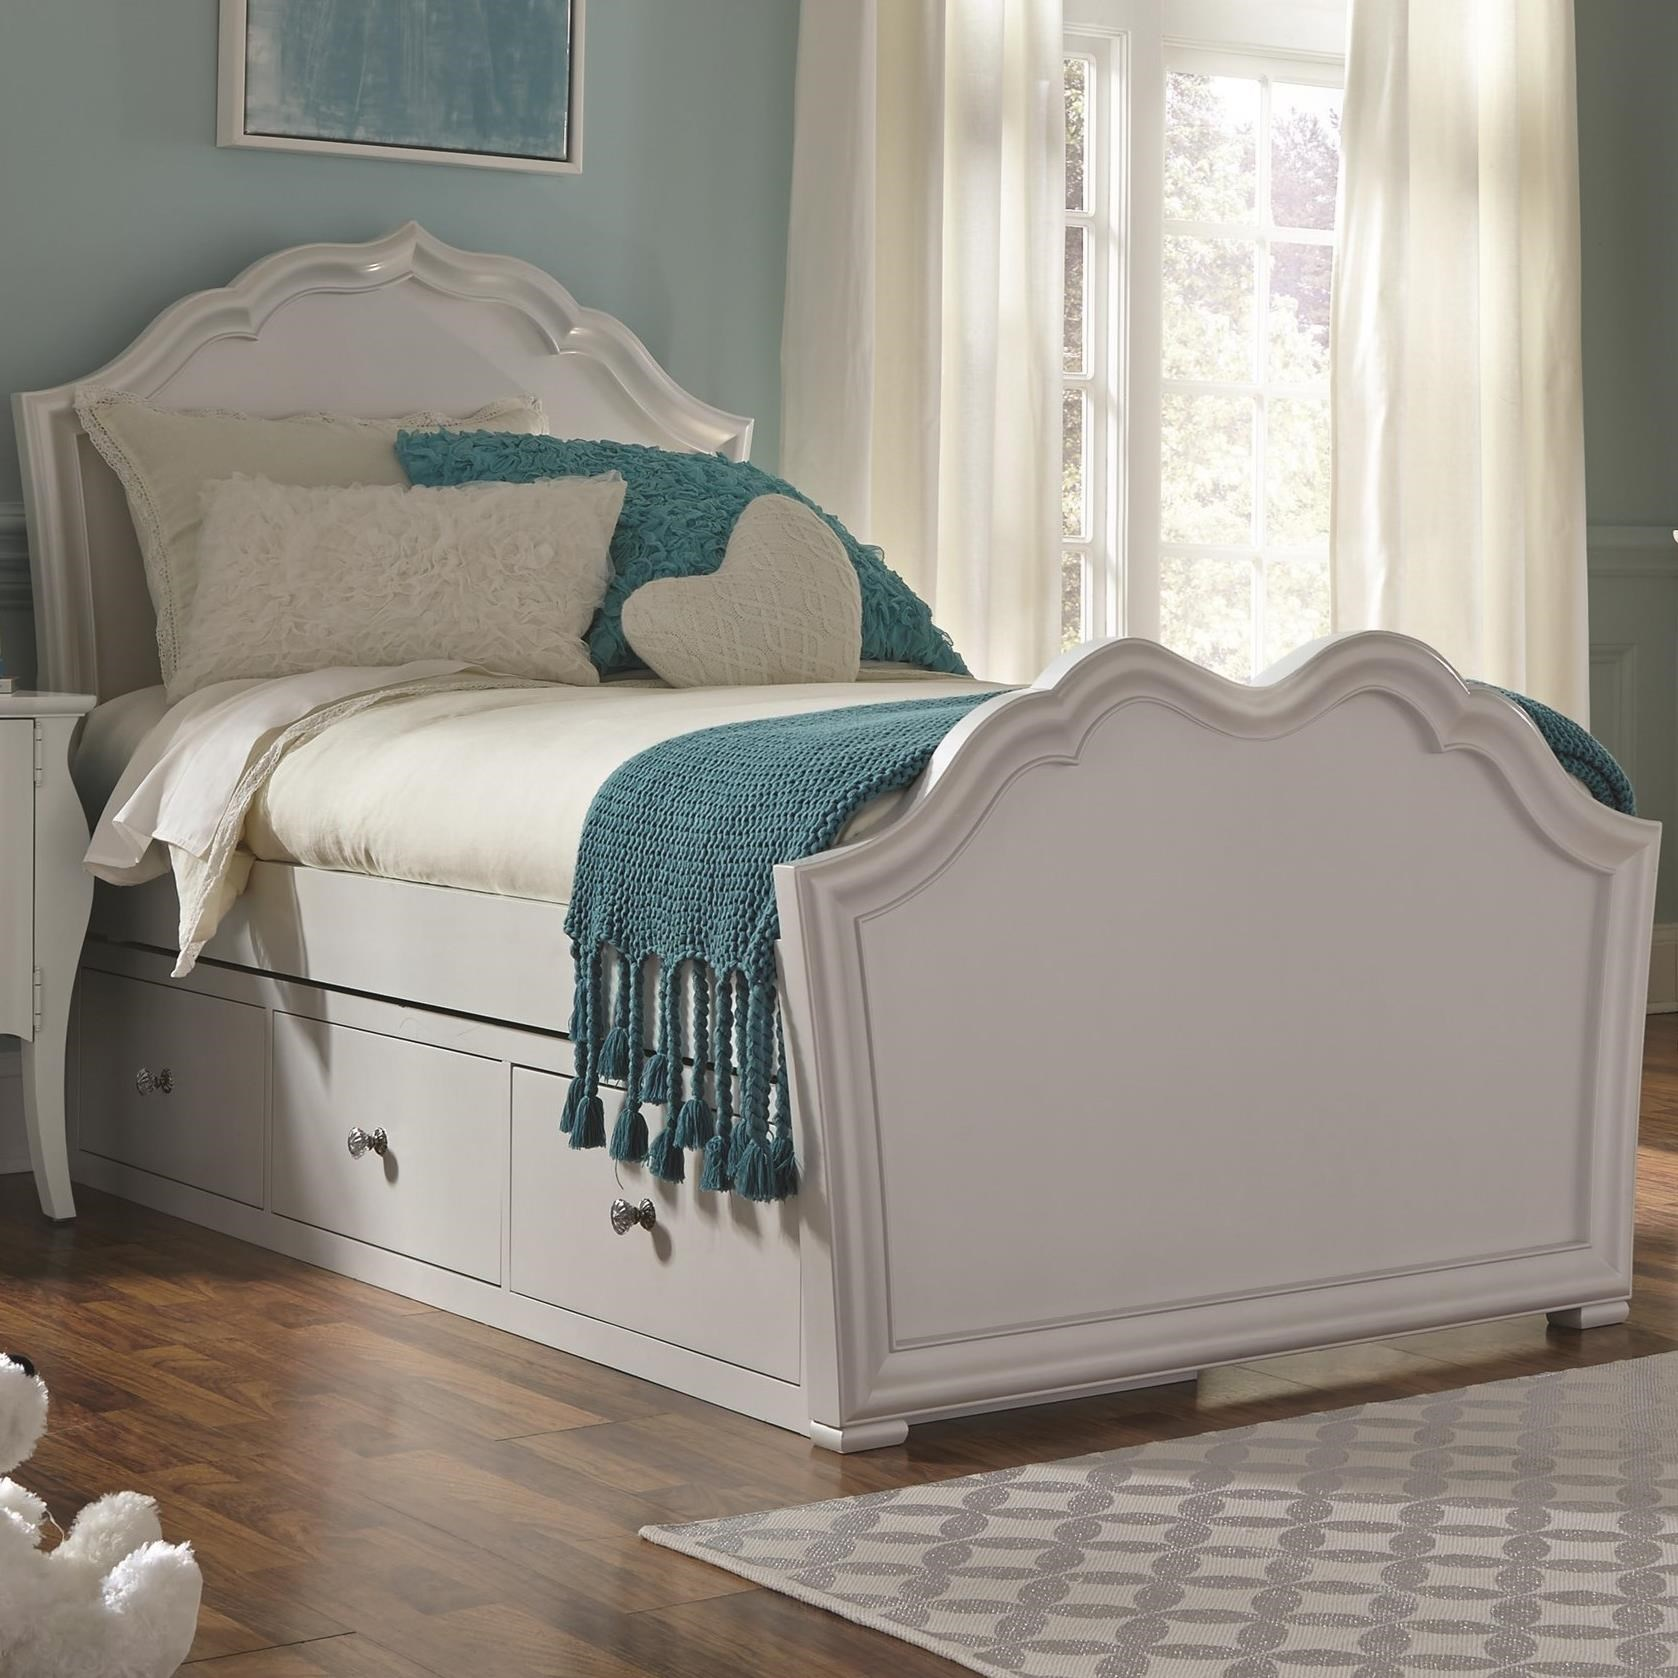 Legacy Classic Kids Tiffany Full Panel Bed with Storage - Item Number: 5930-4104k+9300